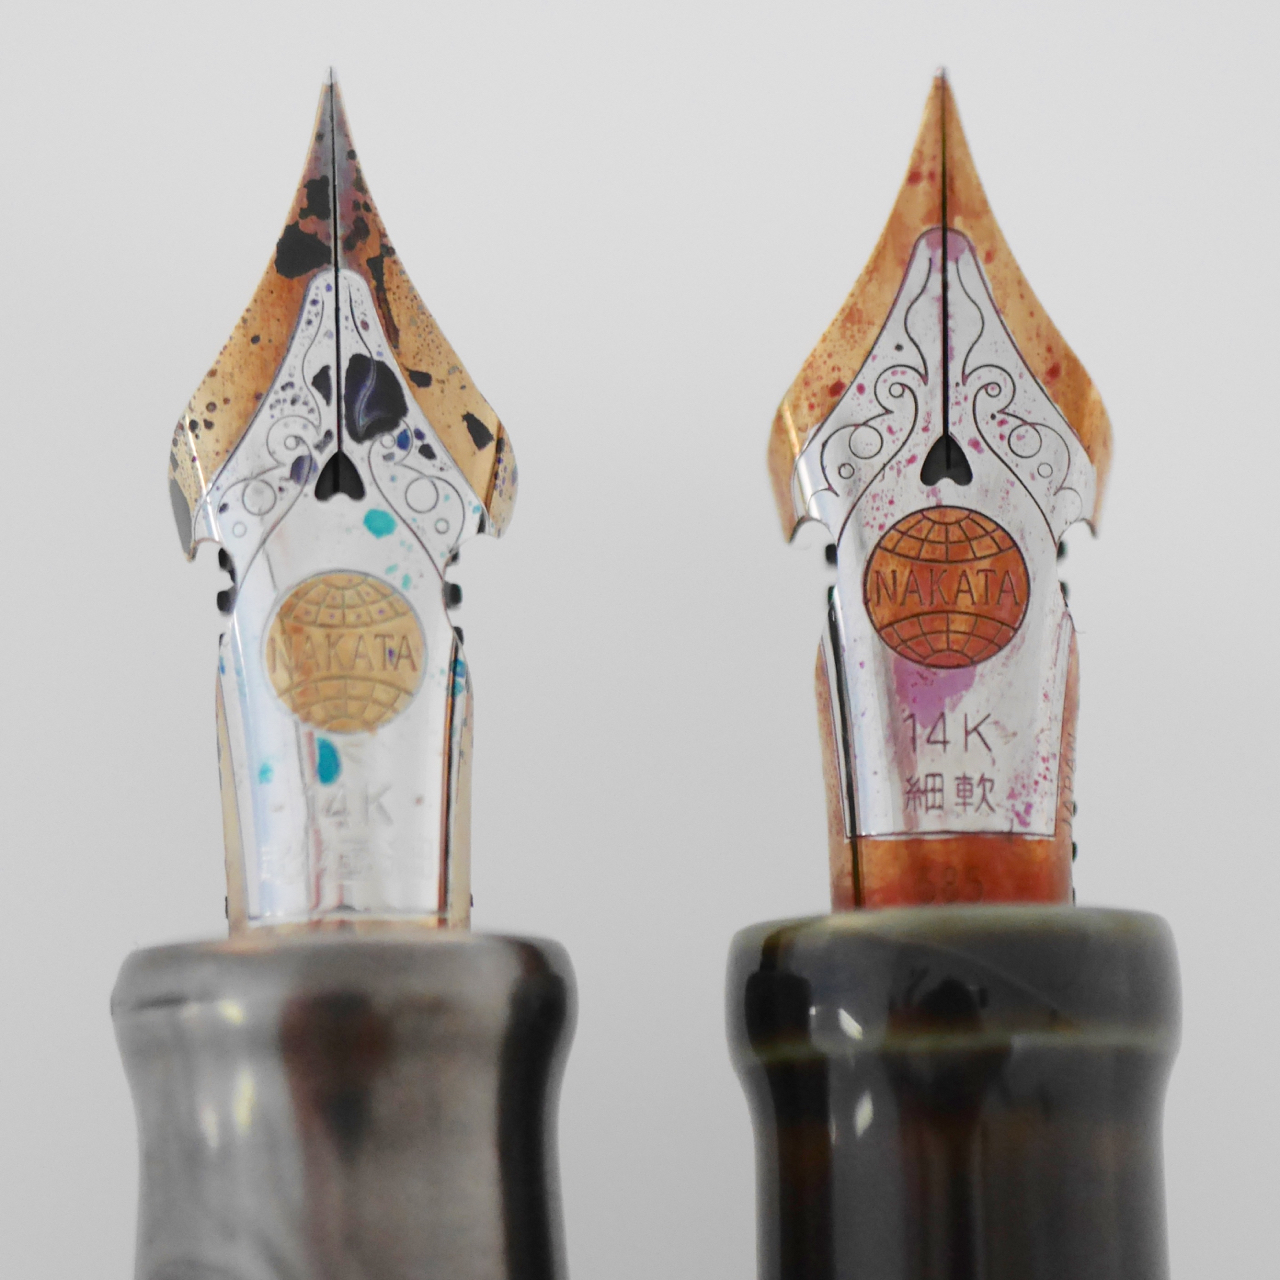 Nakaya's nib design has subtly changed over the years. Note the difference in globe placement ;)